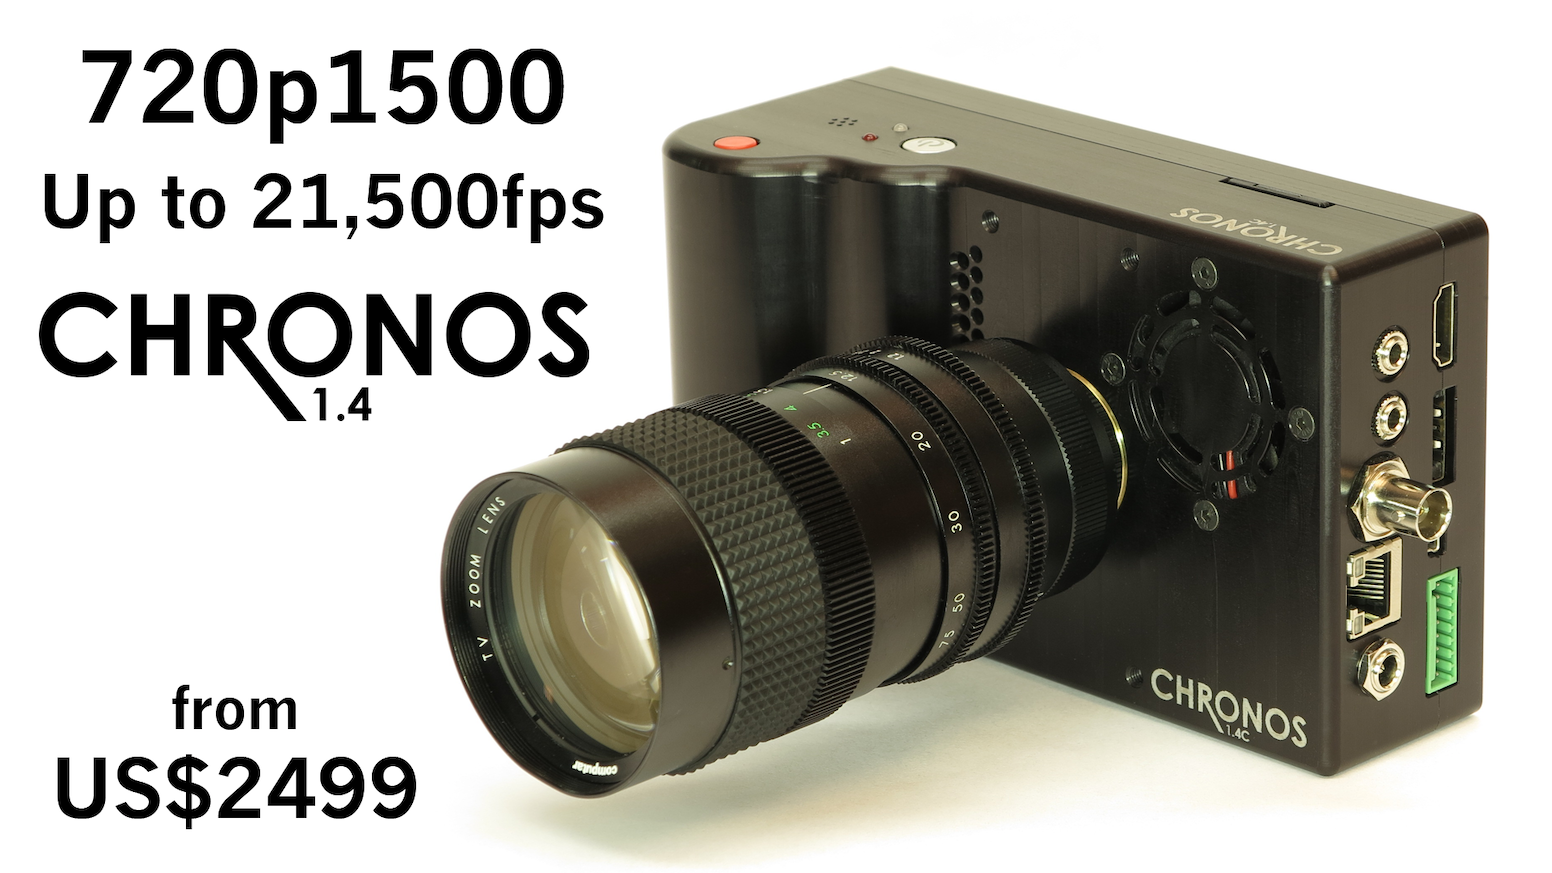 A REAL high-speed camera you can actually afford! 720p 1,500fps in the palm of your hand. Now in stock!